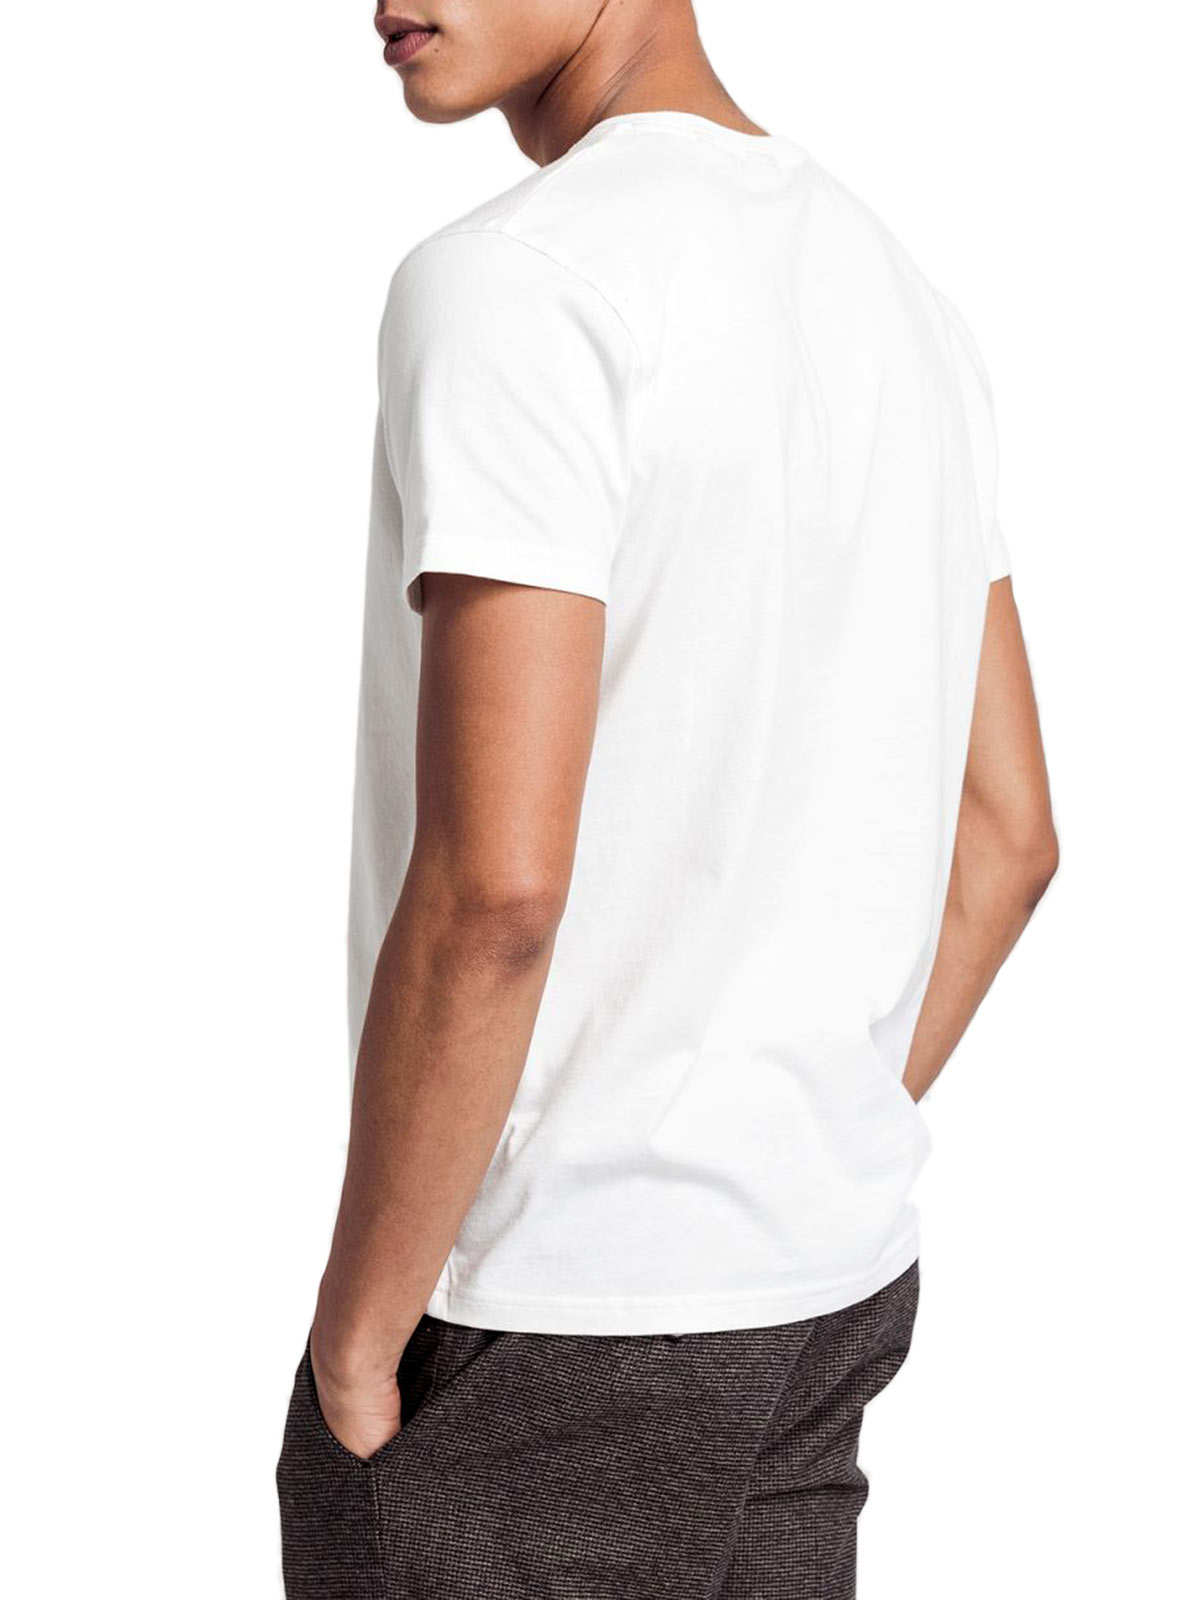 Picture of GANT | T-SHIRT D1. GANT LOCK - UP SS T - SHIRT